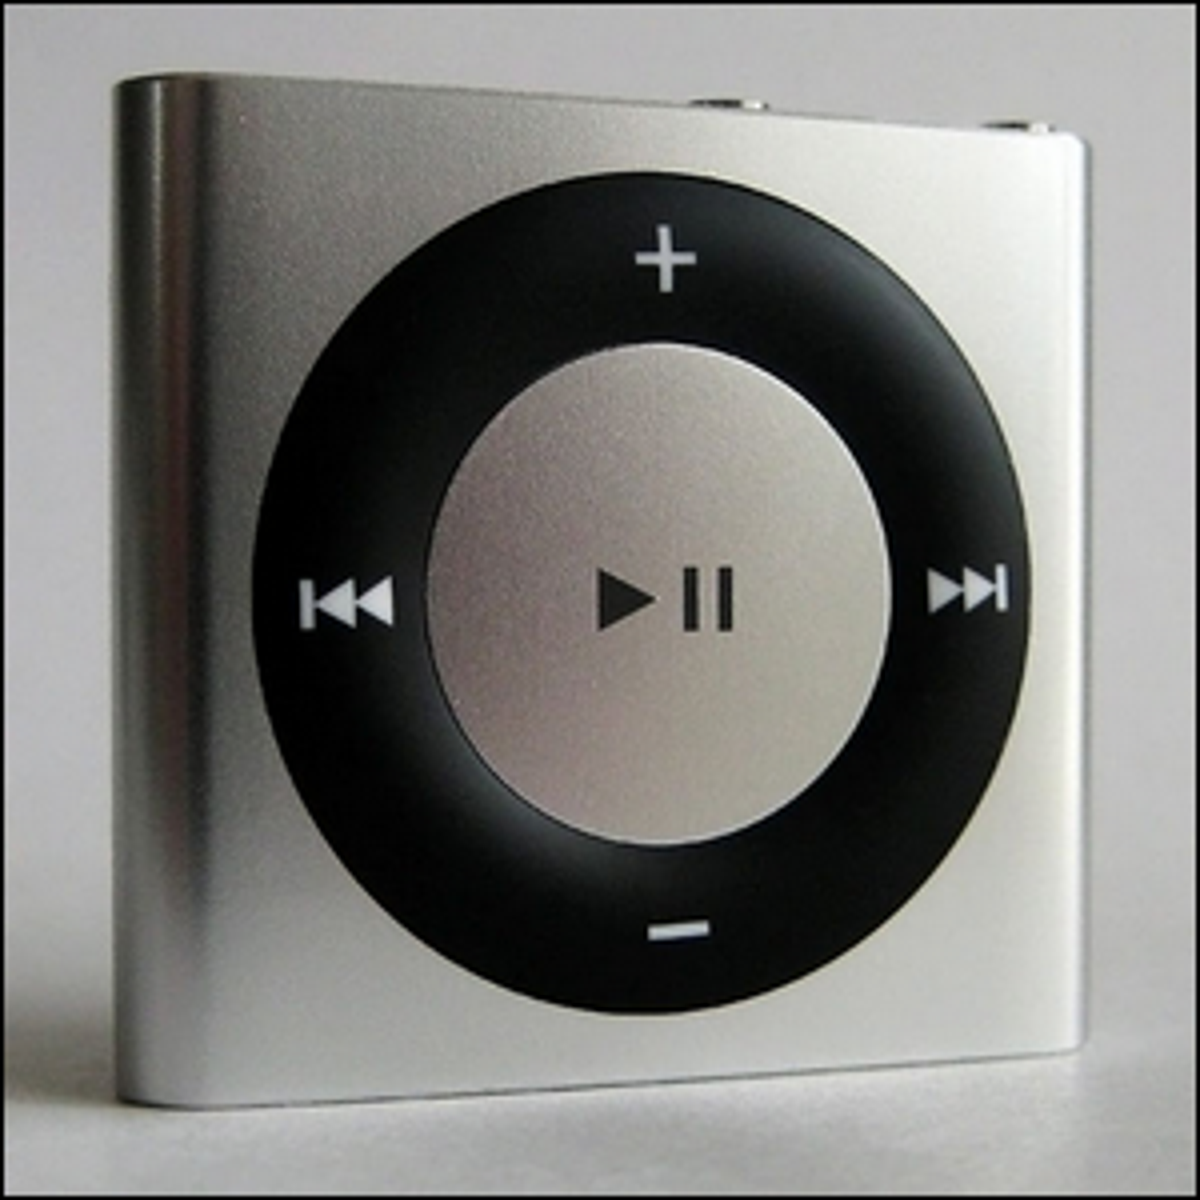 A silver iPod Shuffle 4G with the pause symbol clearly seen in the middle of the central control button.